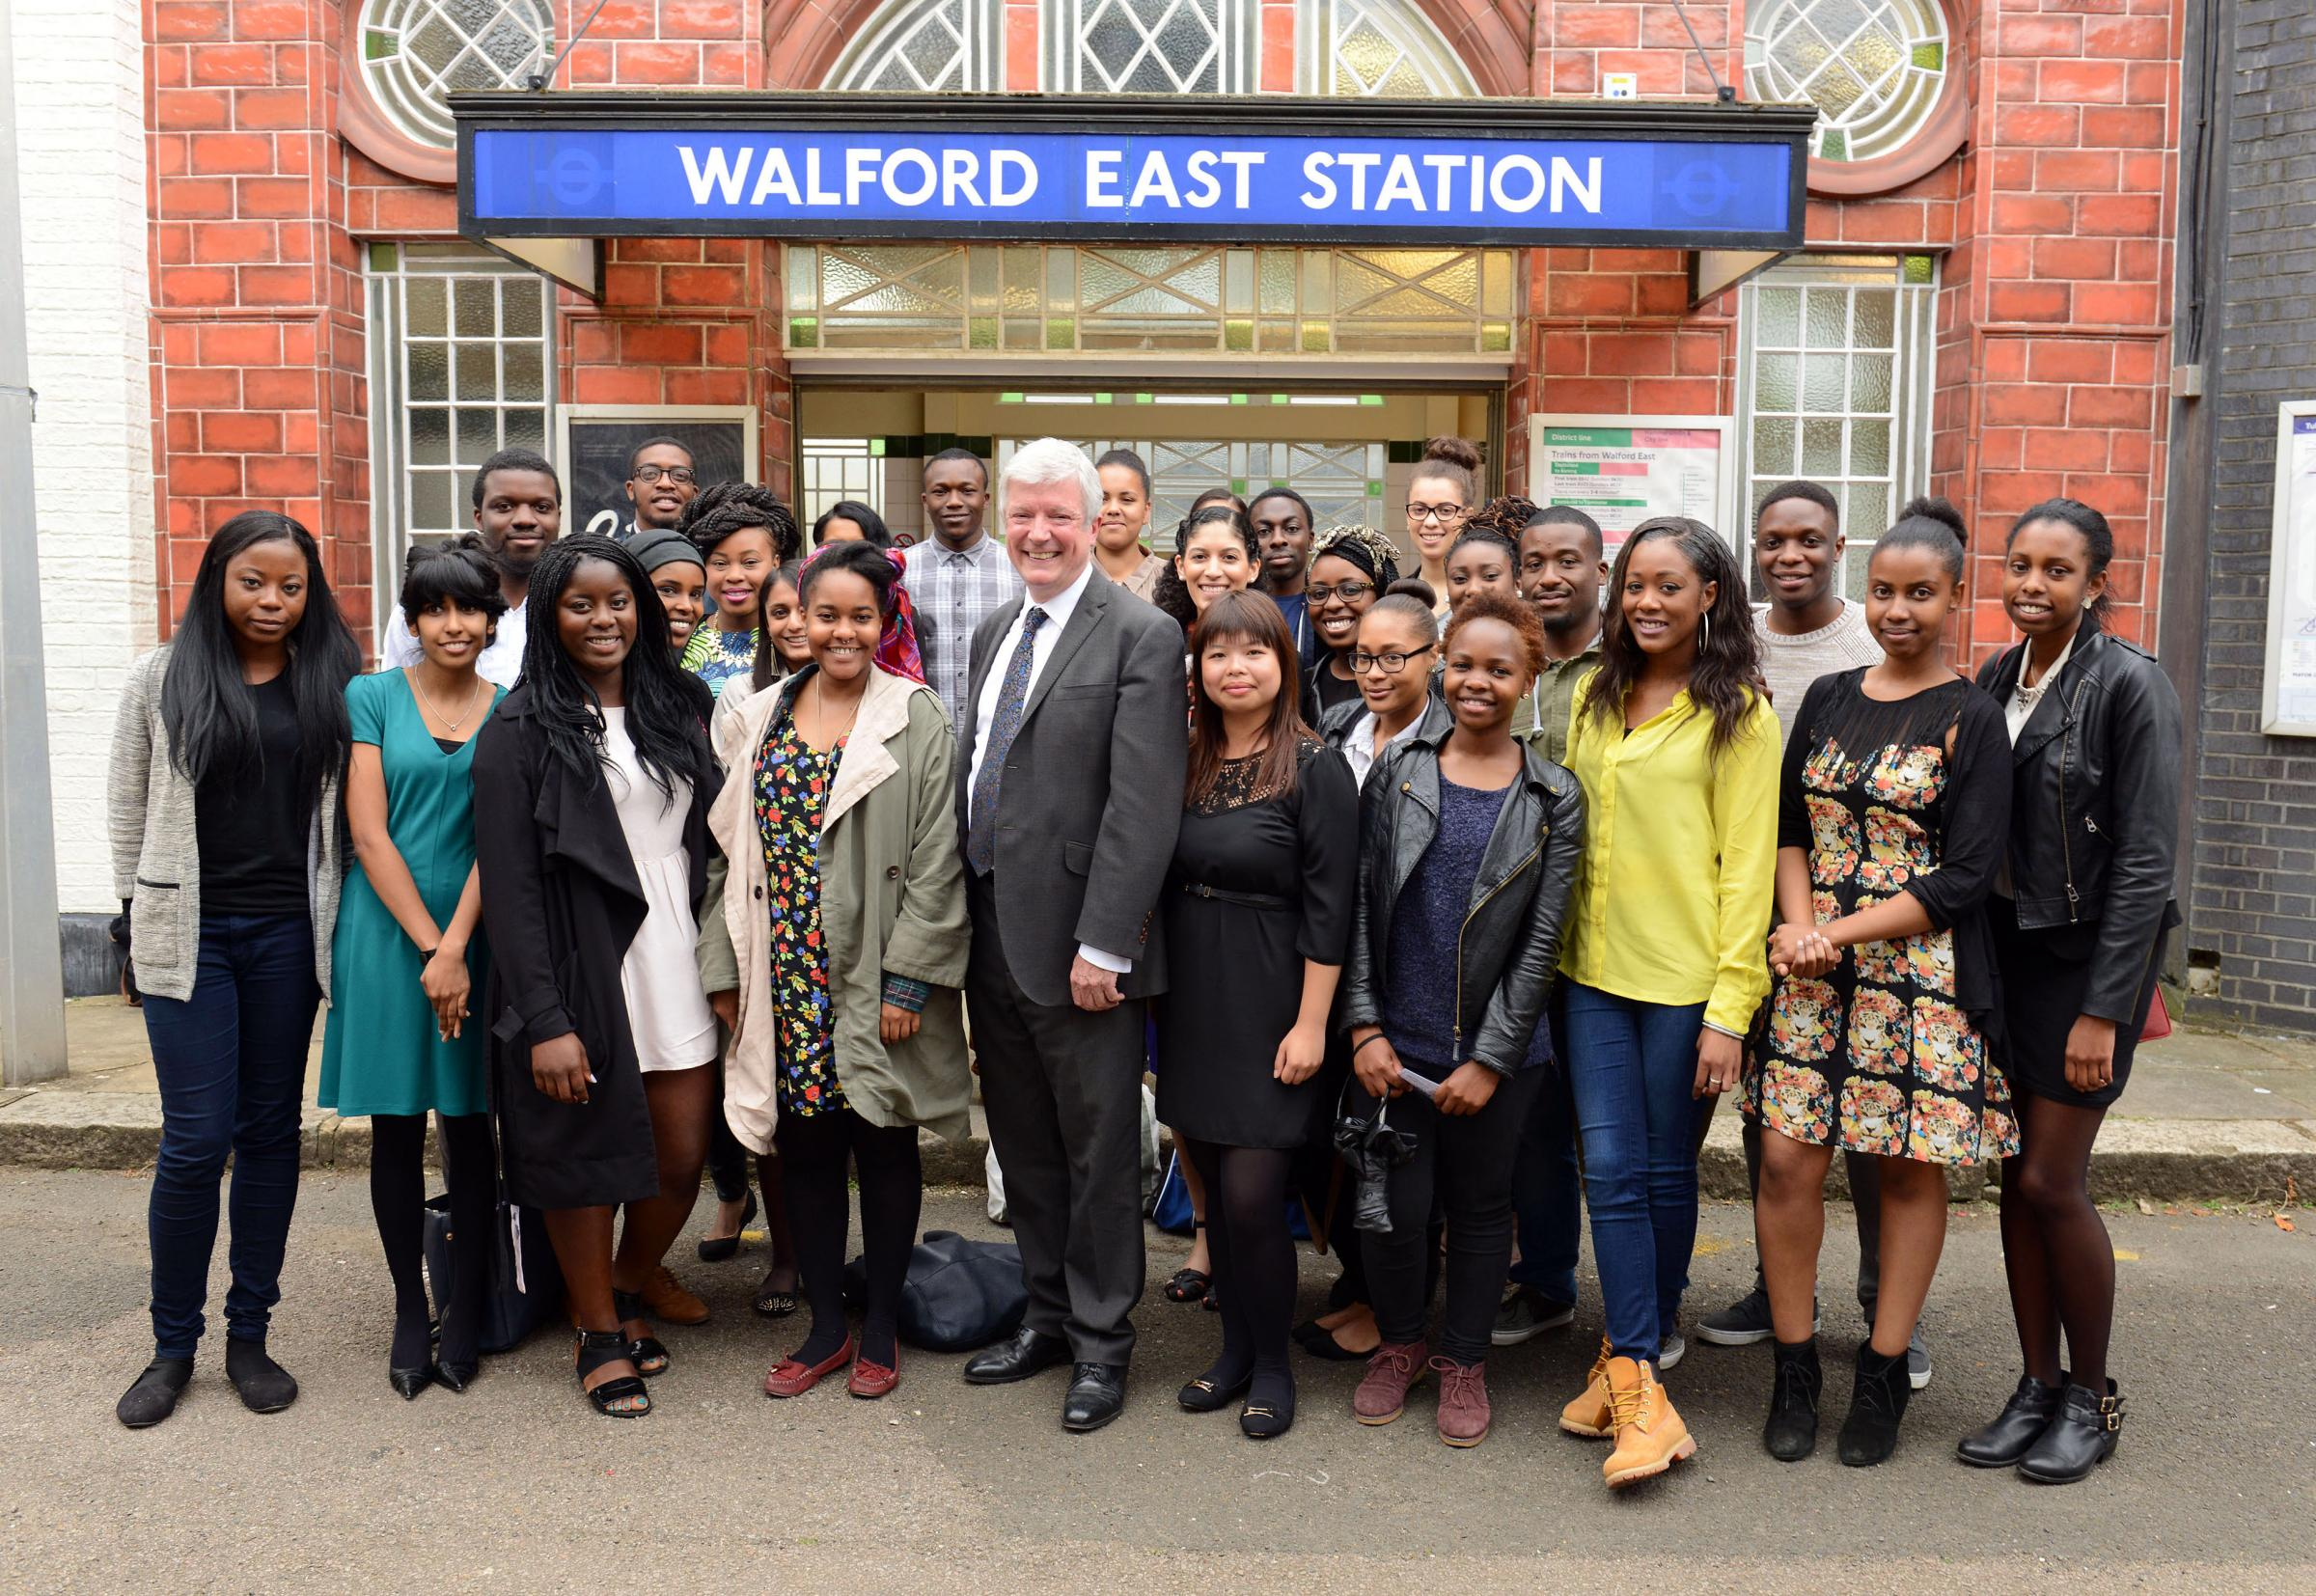 Tony Hall, BBC Director General, with members of Creative Access on the set of EastEnders, after the BBC announced a series of proposals to make